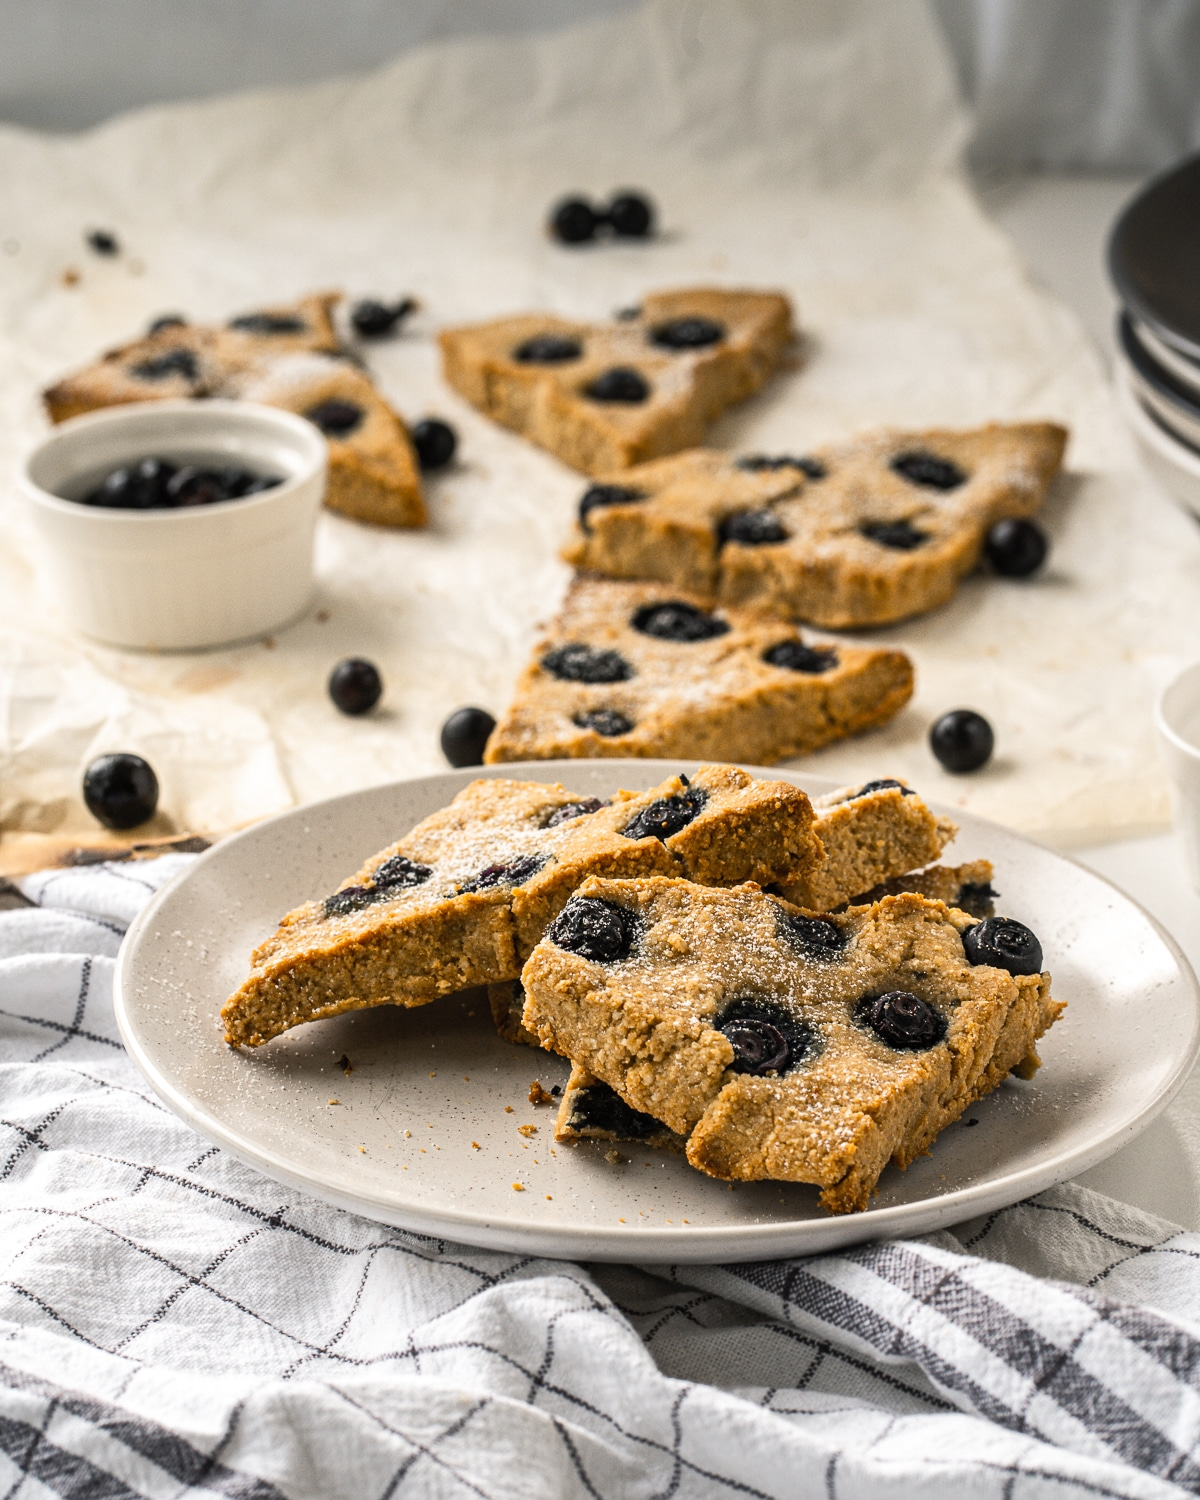 Made with just a few, simple ingredients these delicious Blueberry Scones are gluten free, sugar free, low carb and Keto friendly!